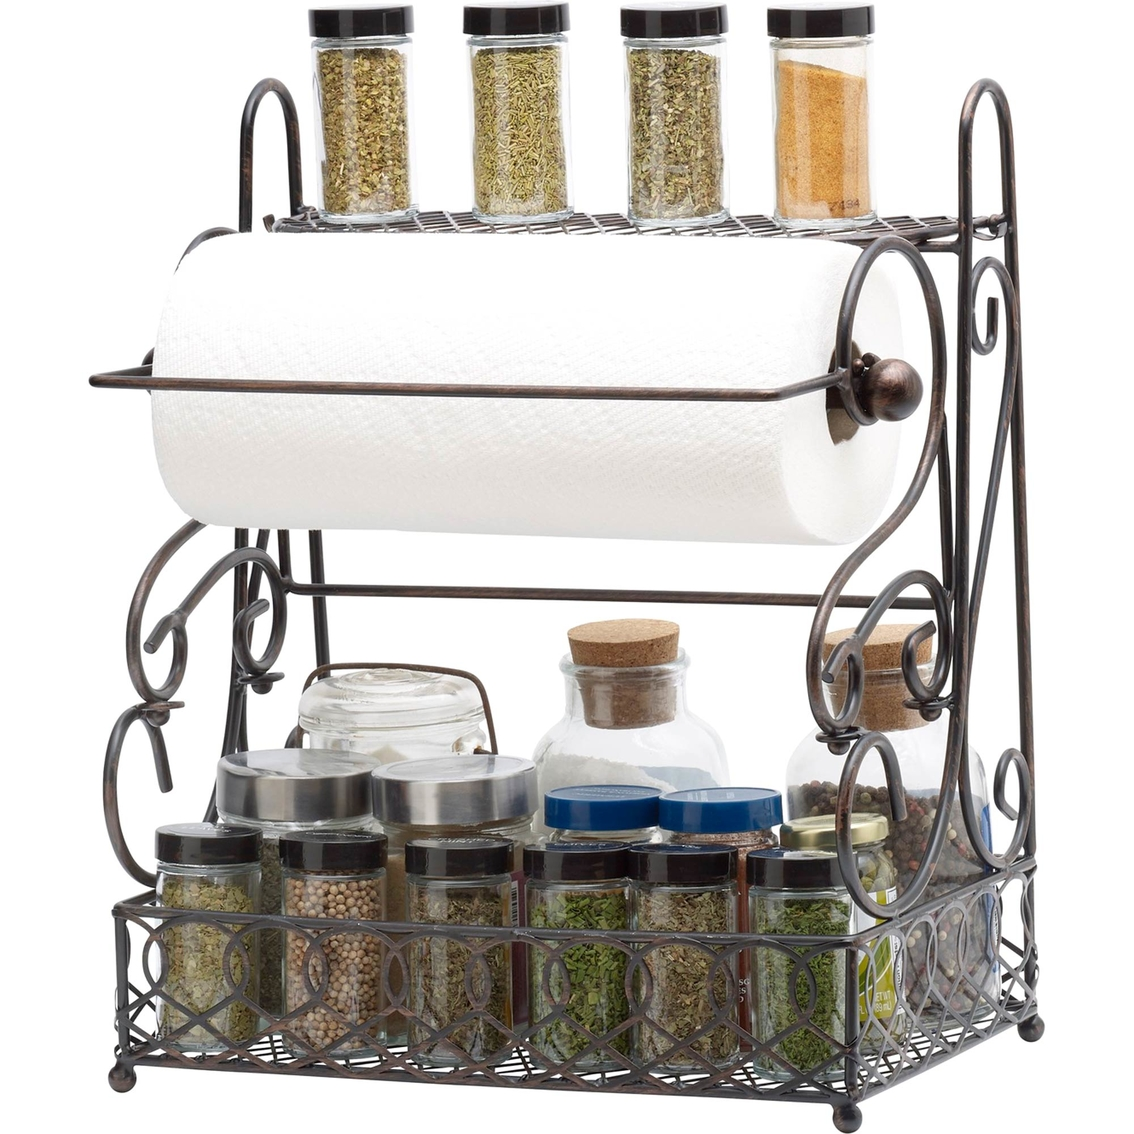 Mikasa Gourmet Basics Wire Scroll Basket With Removable Paper Towel Holder Countertop Wall Organization Household Shop The Exchange